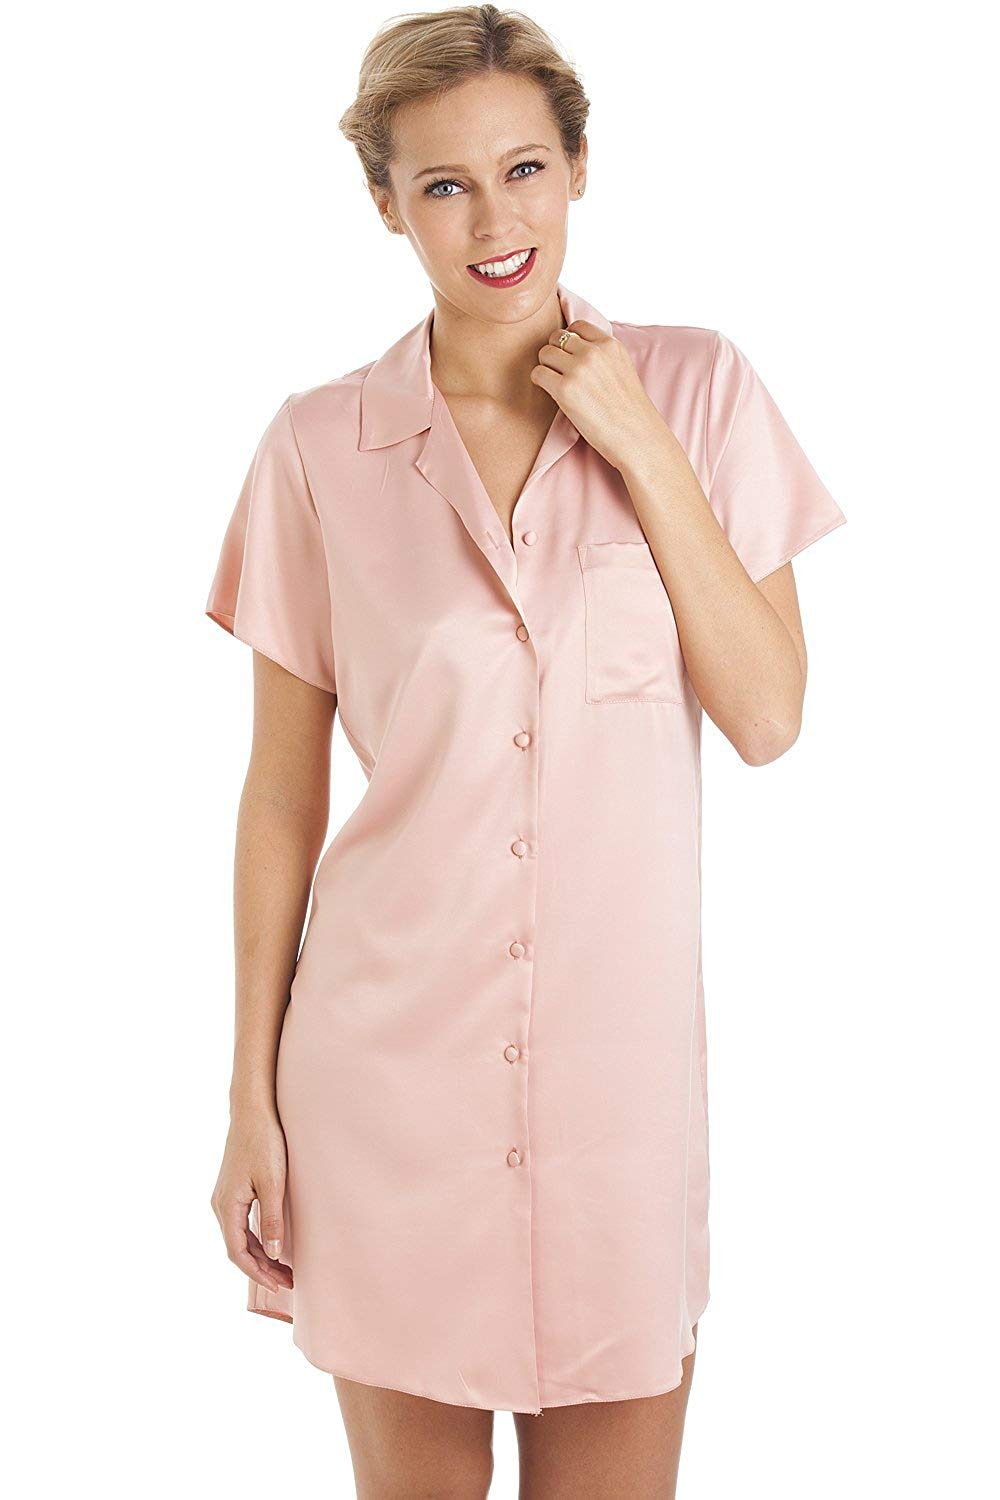 a4153e267f Get Quotations · Camille Womens Luxurious Knee Length Pink Satin Nightshirt